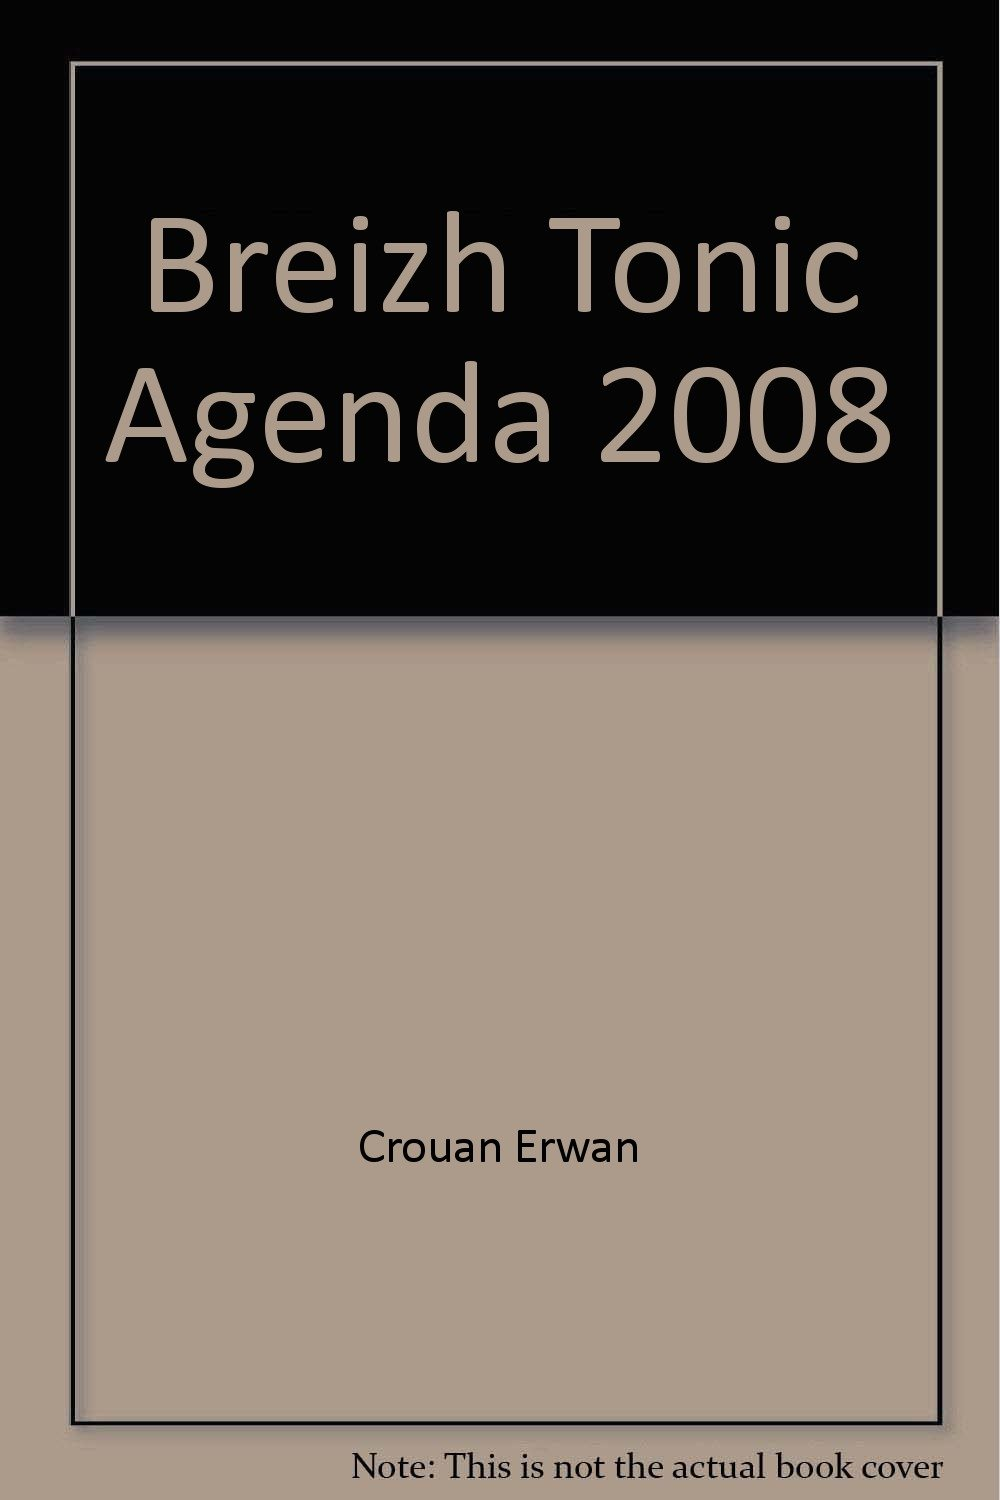 Breizh Tonic Agenda 2008: 9782843463334: Amazon.com: Books